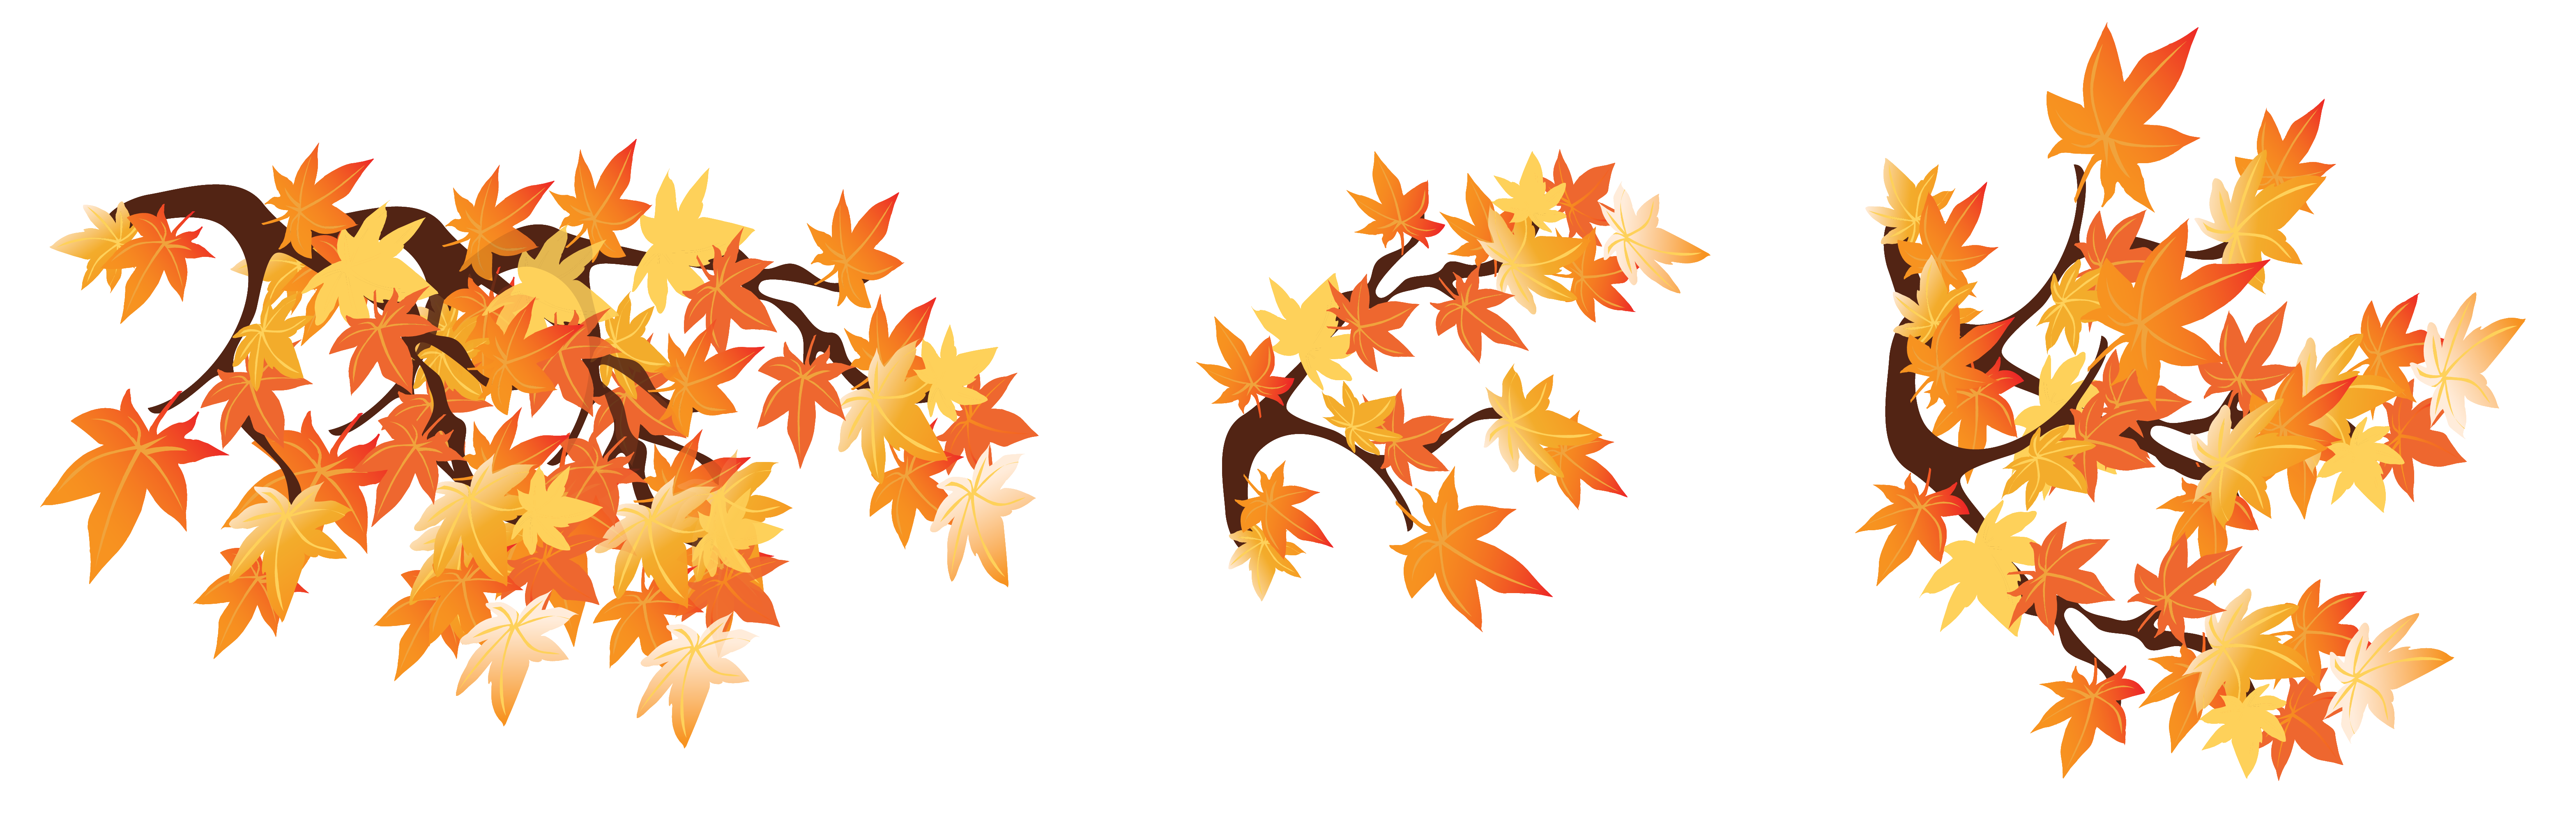 Fall tree branch clipart black and white download Autumn Branches with Leaves png Clipart Image | Gallery ... black and white download